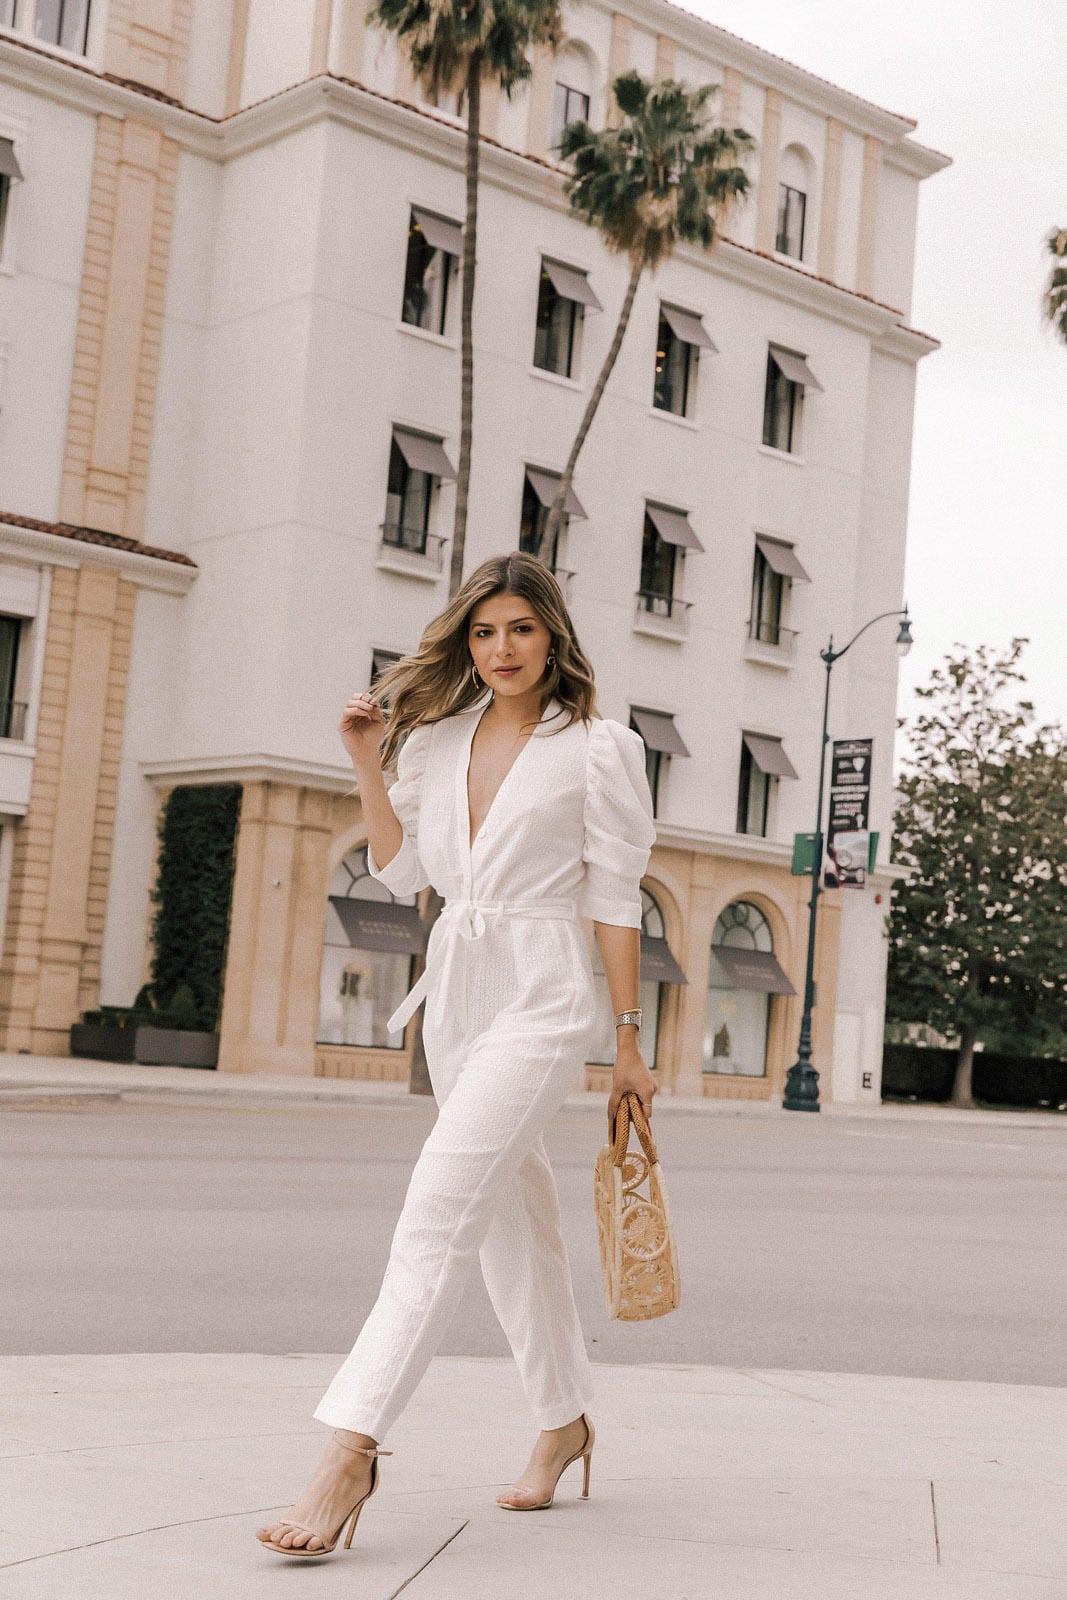 fcc68e42052 How to Wear a Jumpsuit When You re Petite - The Girl from Panama